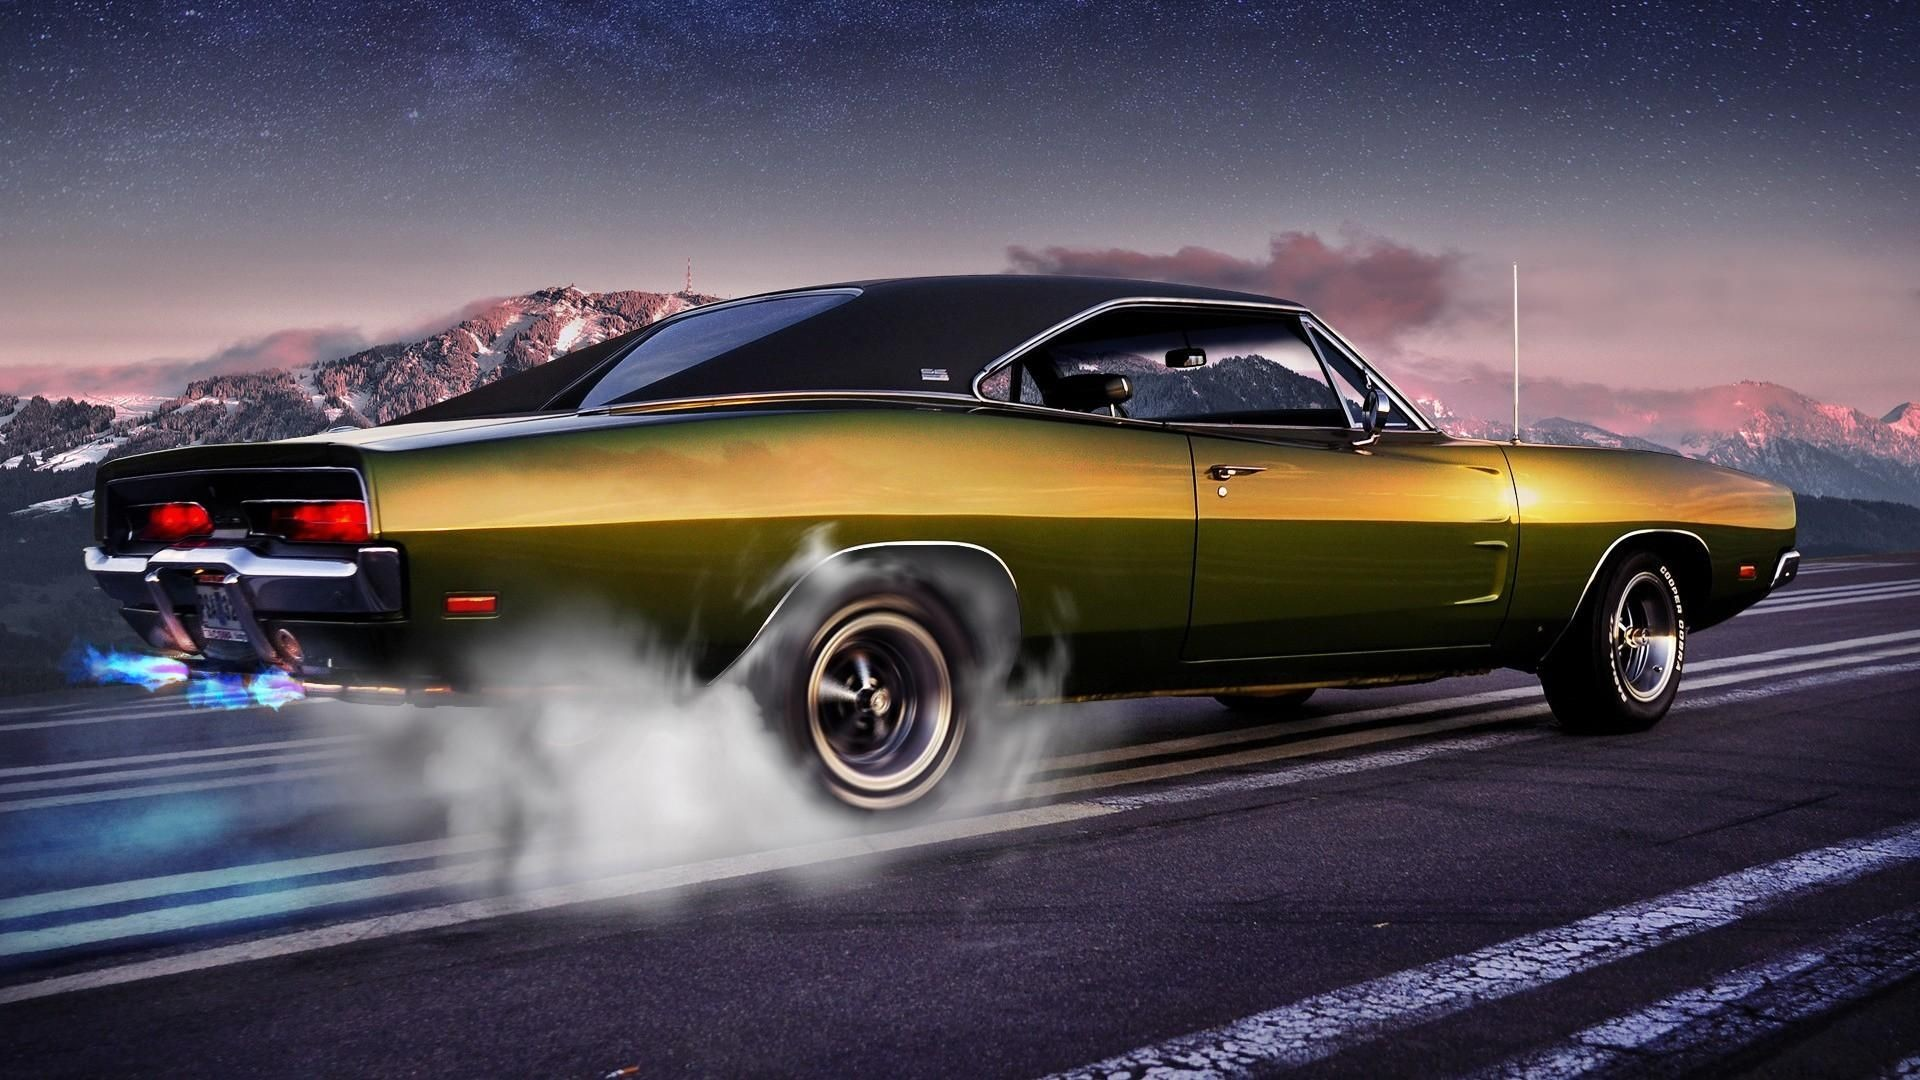 1920x1080 Muscle Cars Wallpaper Wide #Bqo